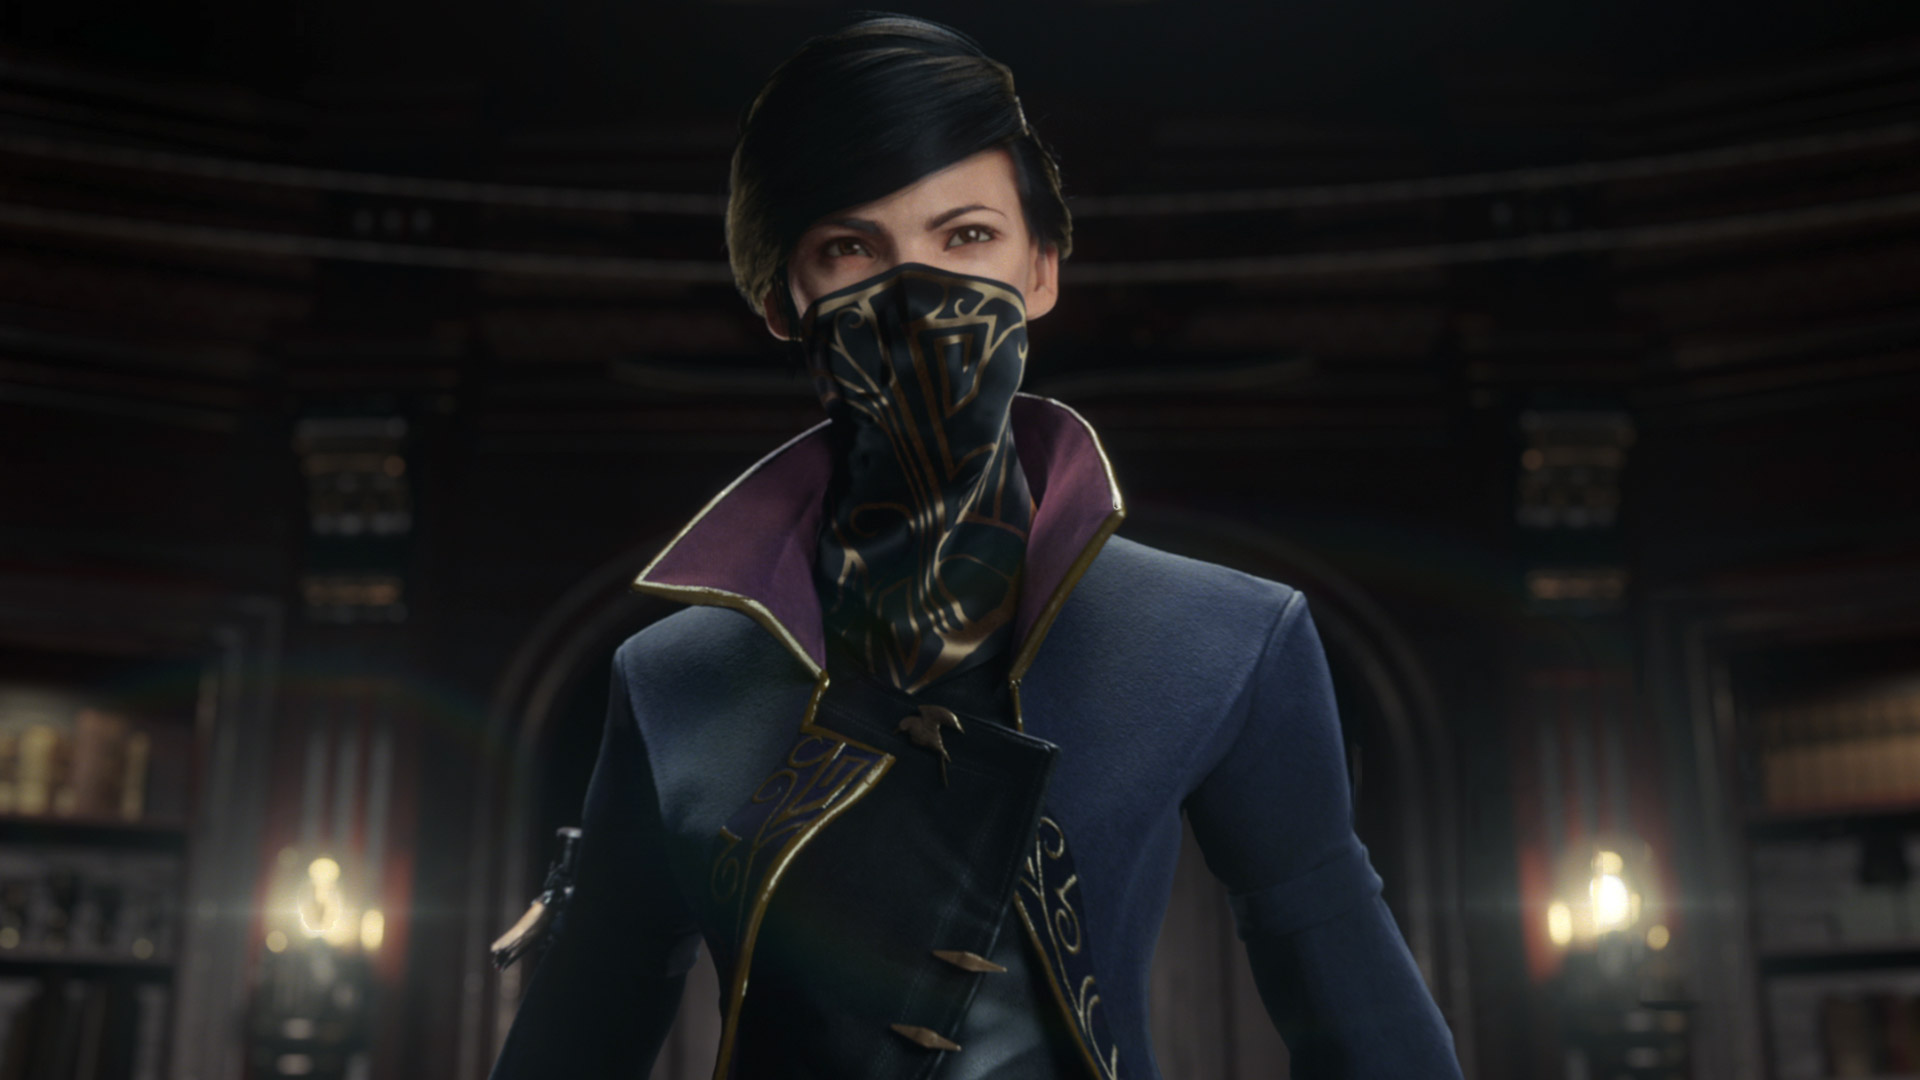 Free Dishonored 2 Wallpaper in 1920x1080